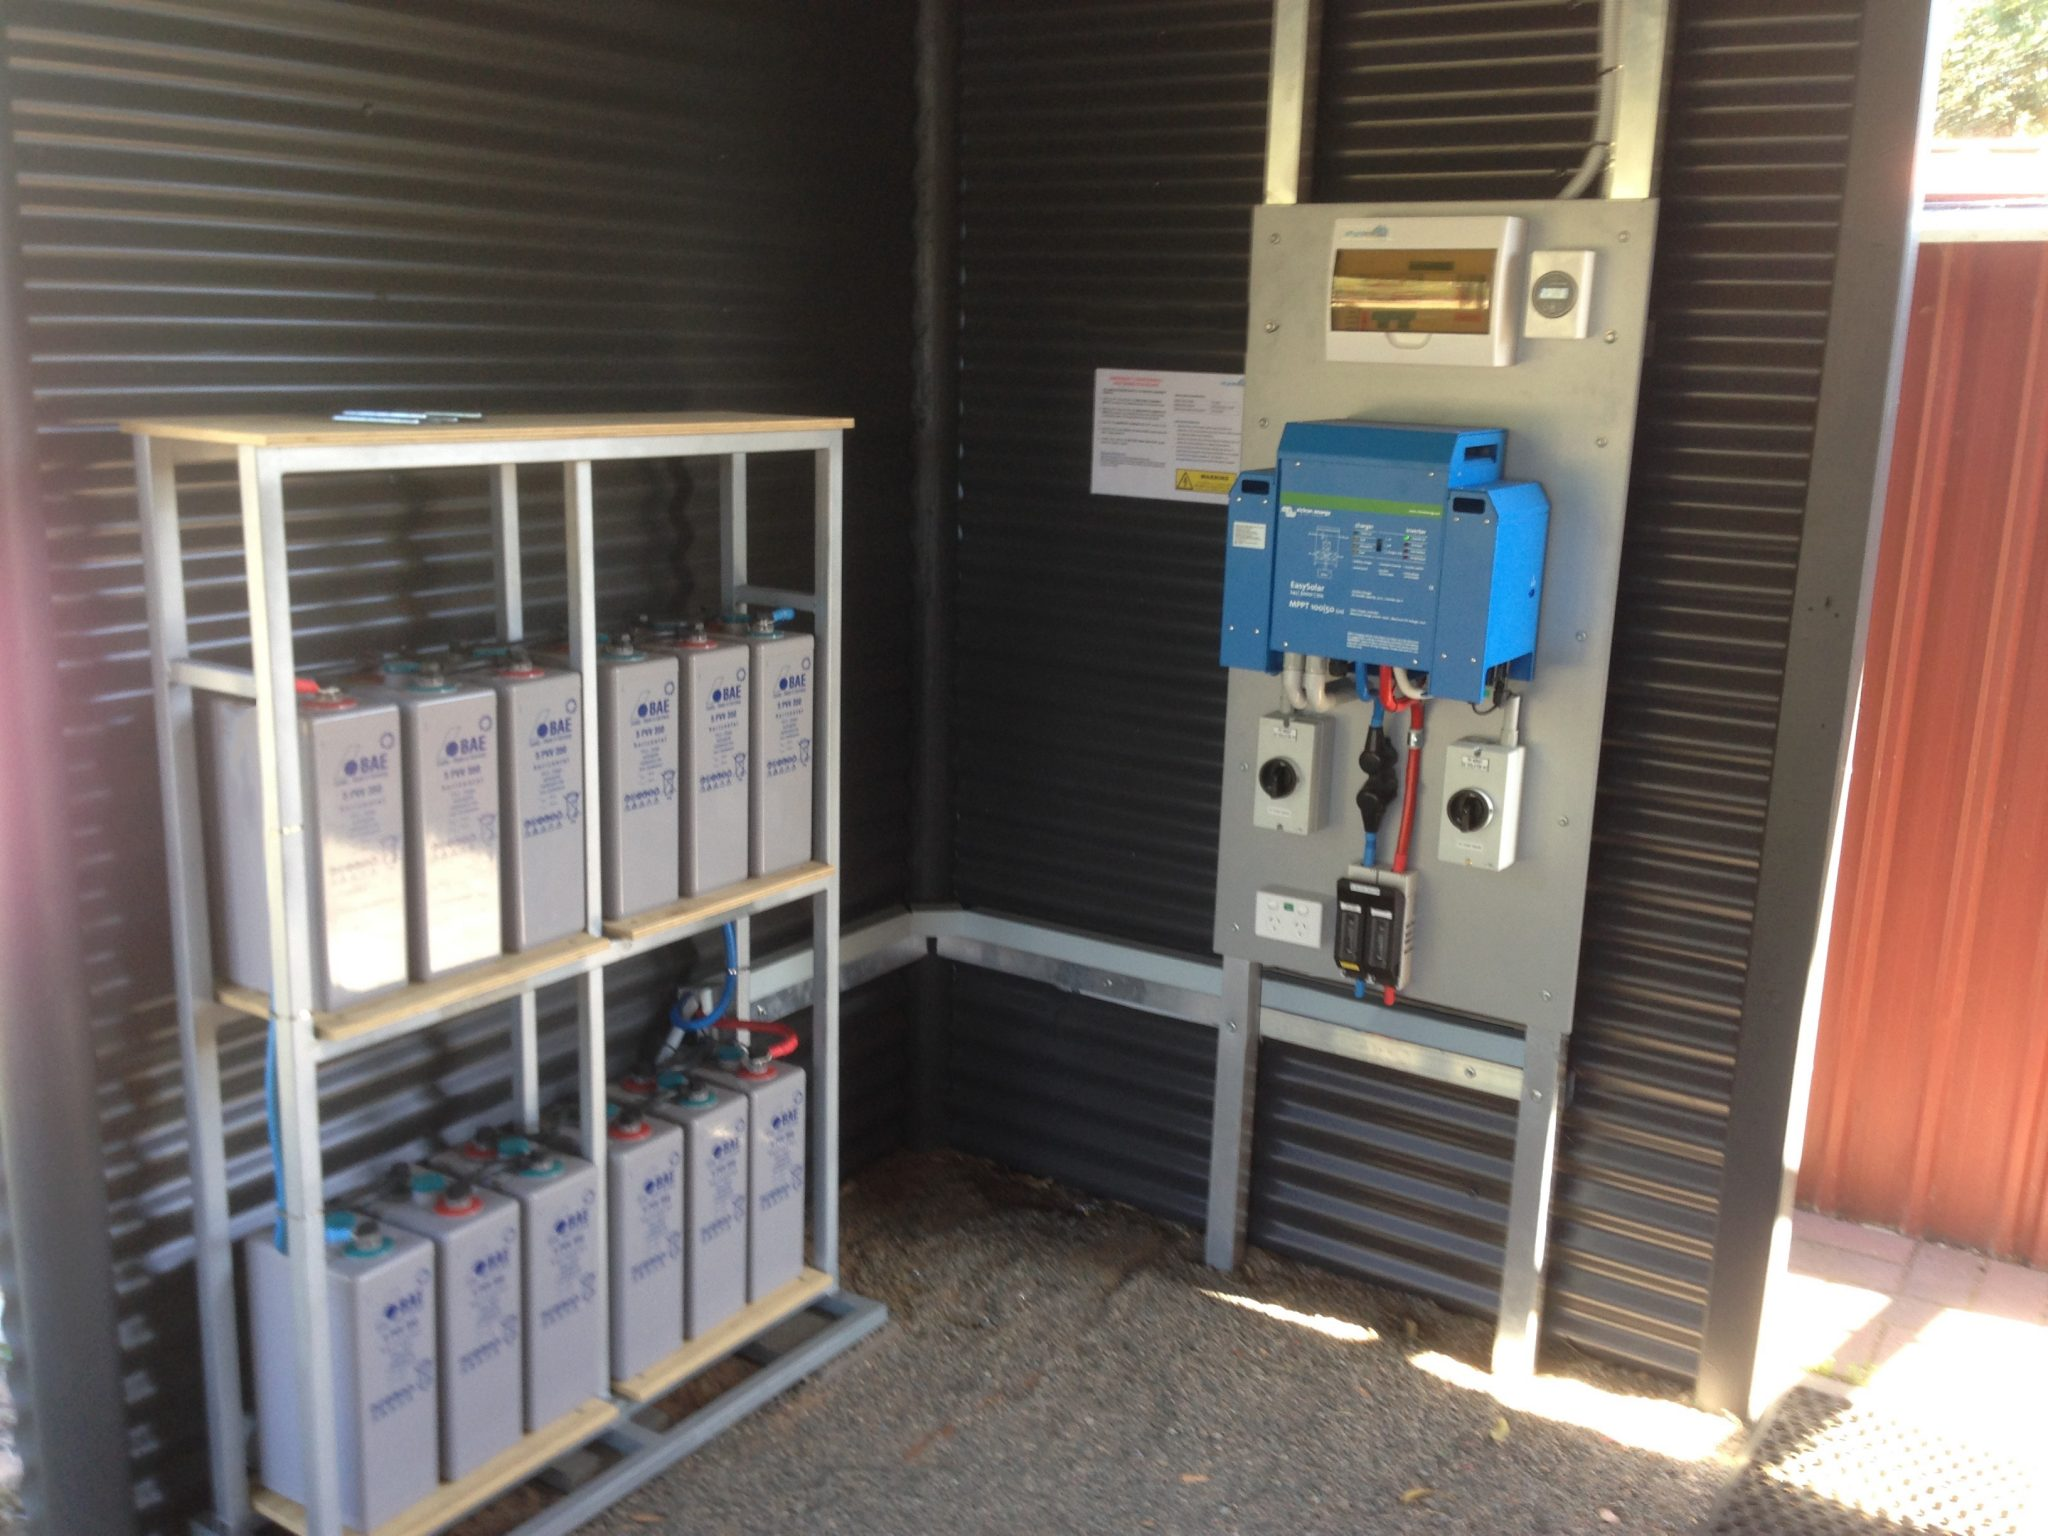 Off Grid Shed Power Energy Australia How To Wire A For Electricity The System Requires Very Small Amount Of Space And Fits Neatly In Your Utility